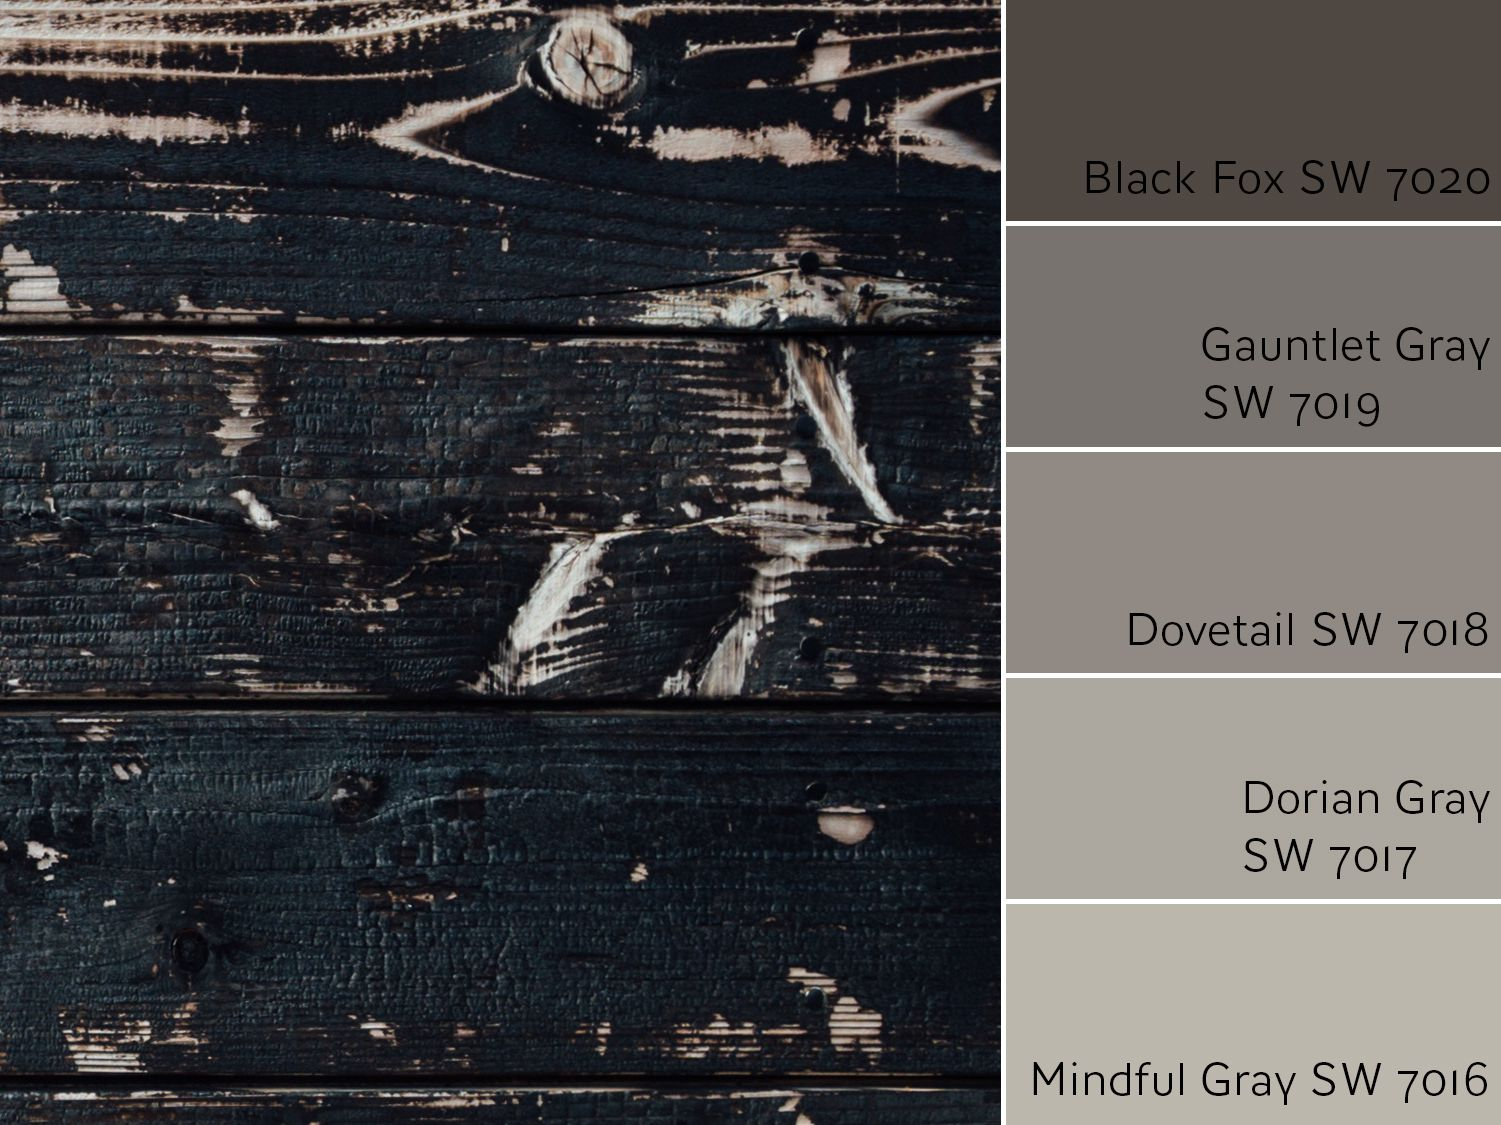 Black fox sw 7020 review by laura rugh rugh design - Sherwin williams black fox exterior ...